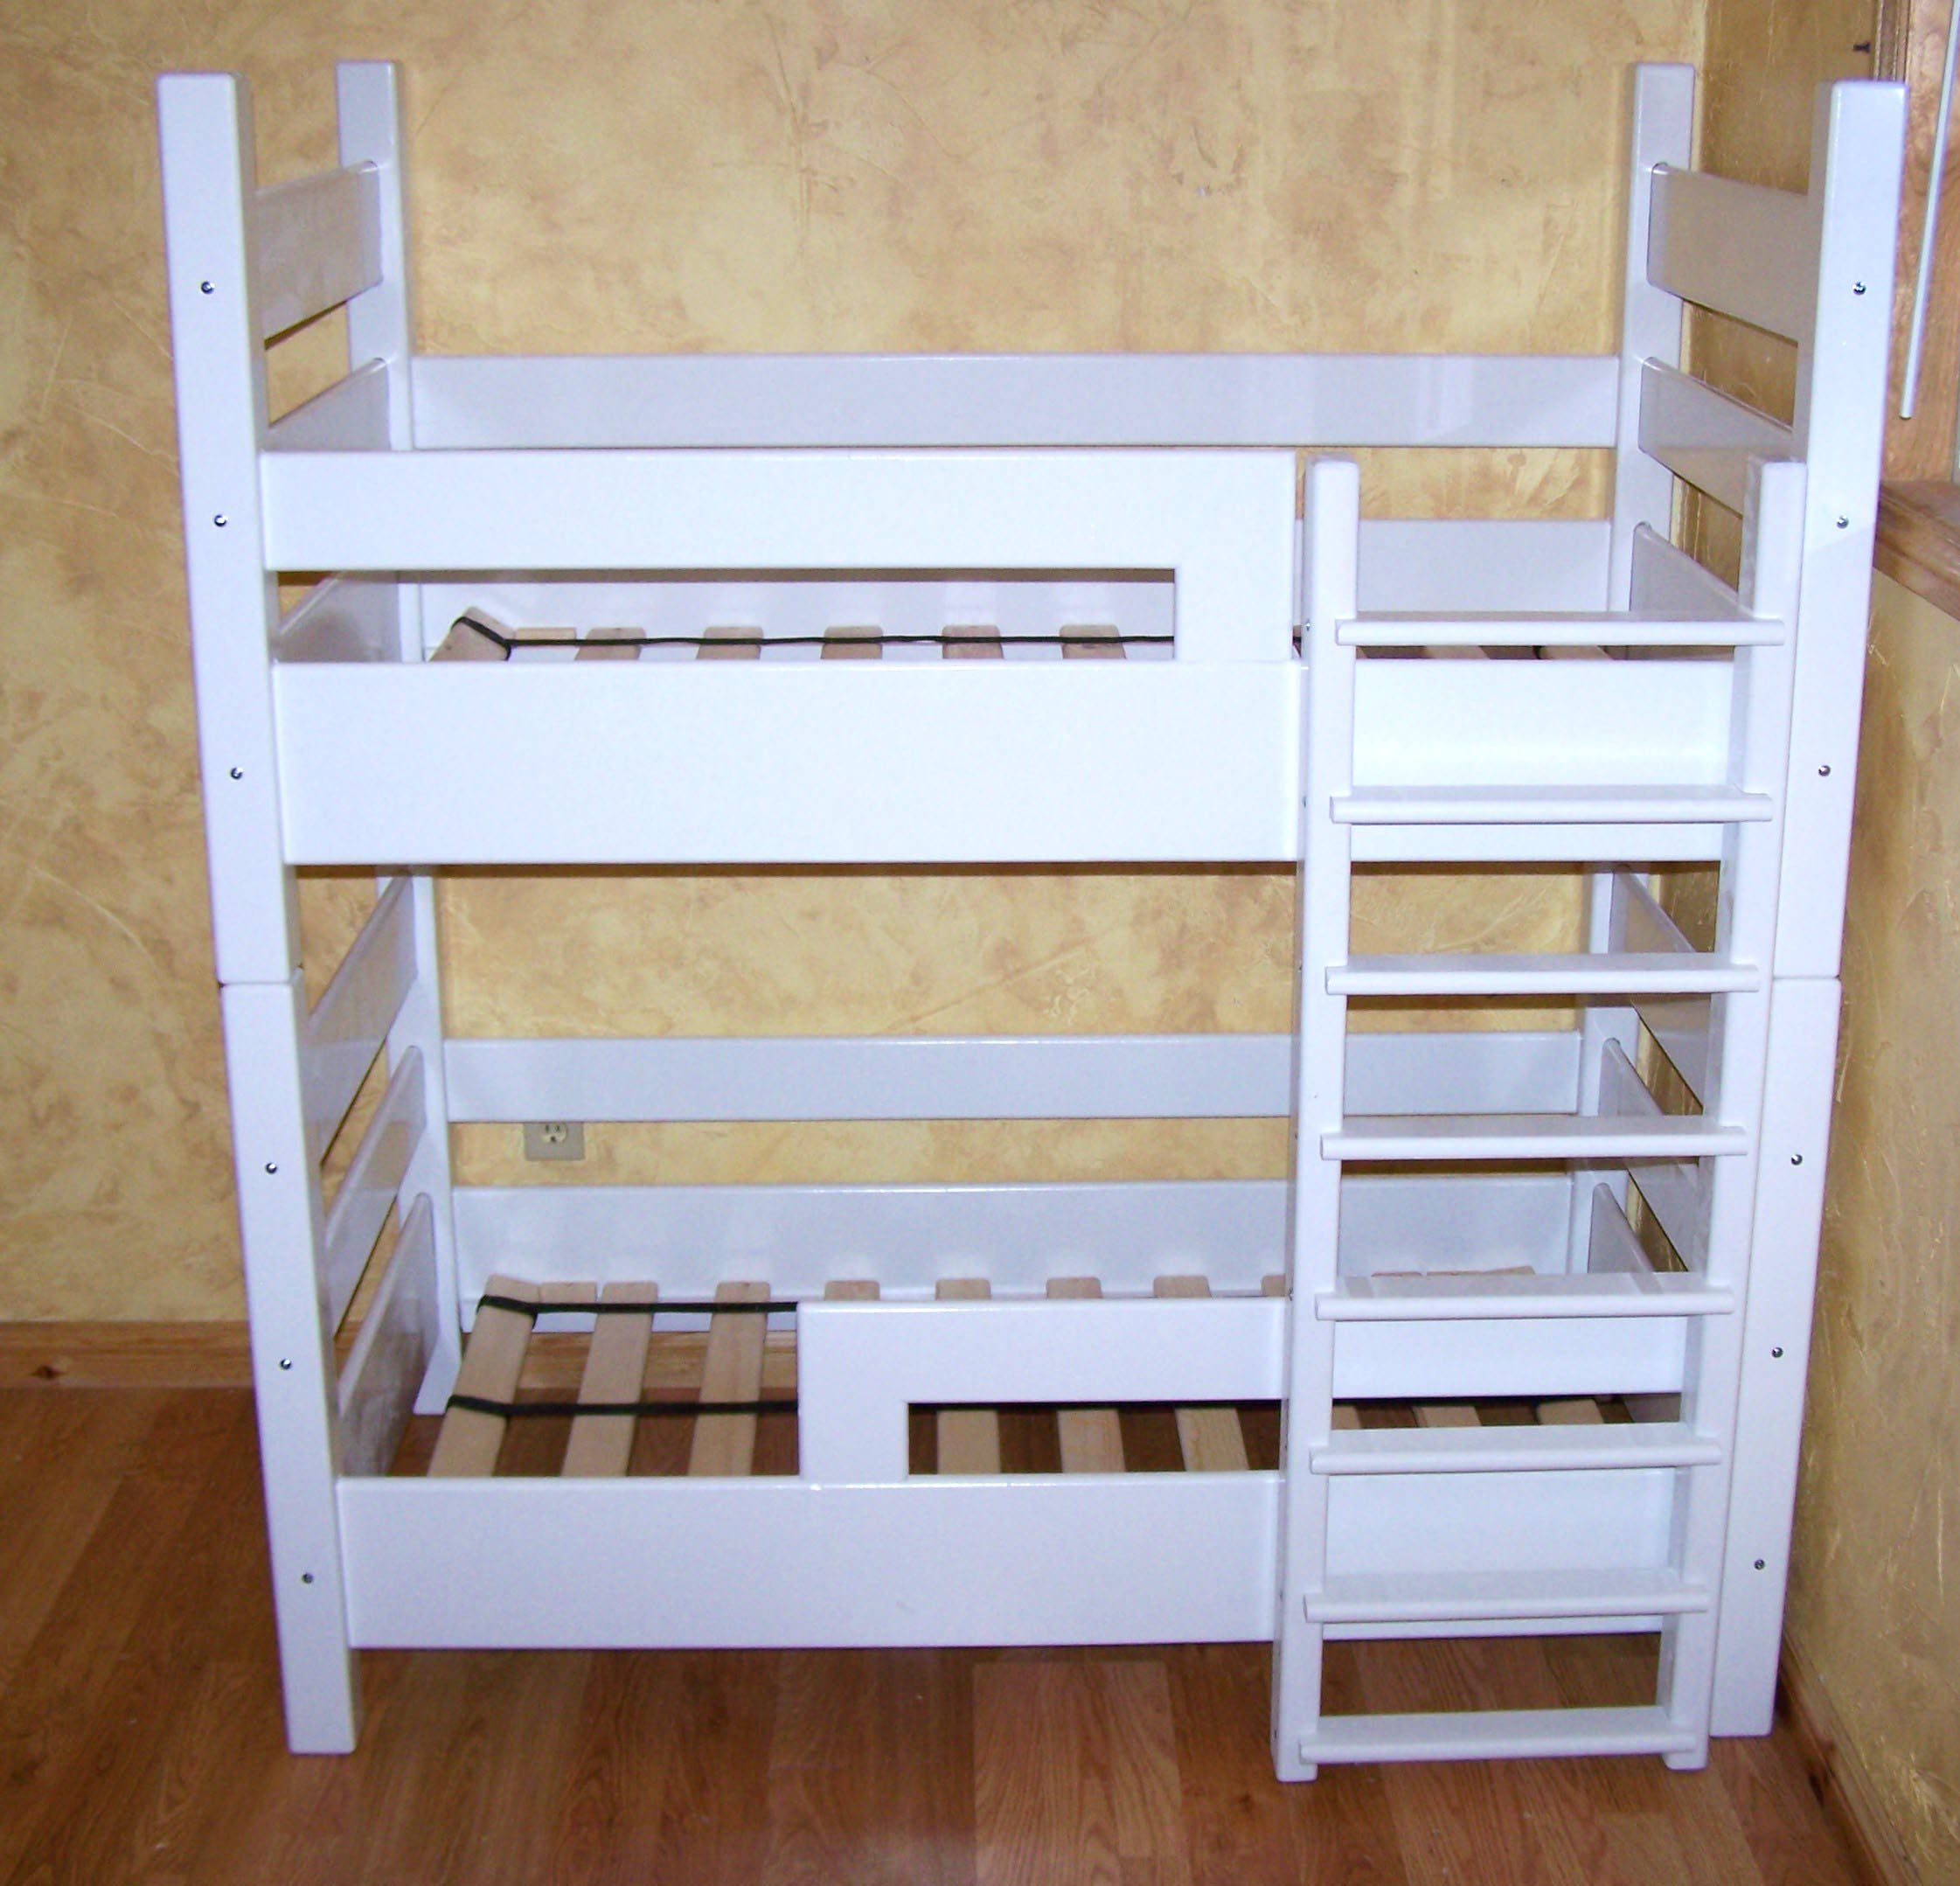 Crib Size Bunk Bed Bunk Beds Diy Bunk Bed Toddler Bunk Beds